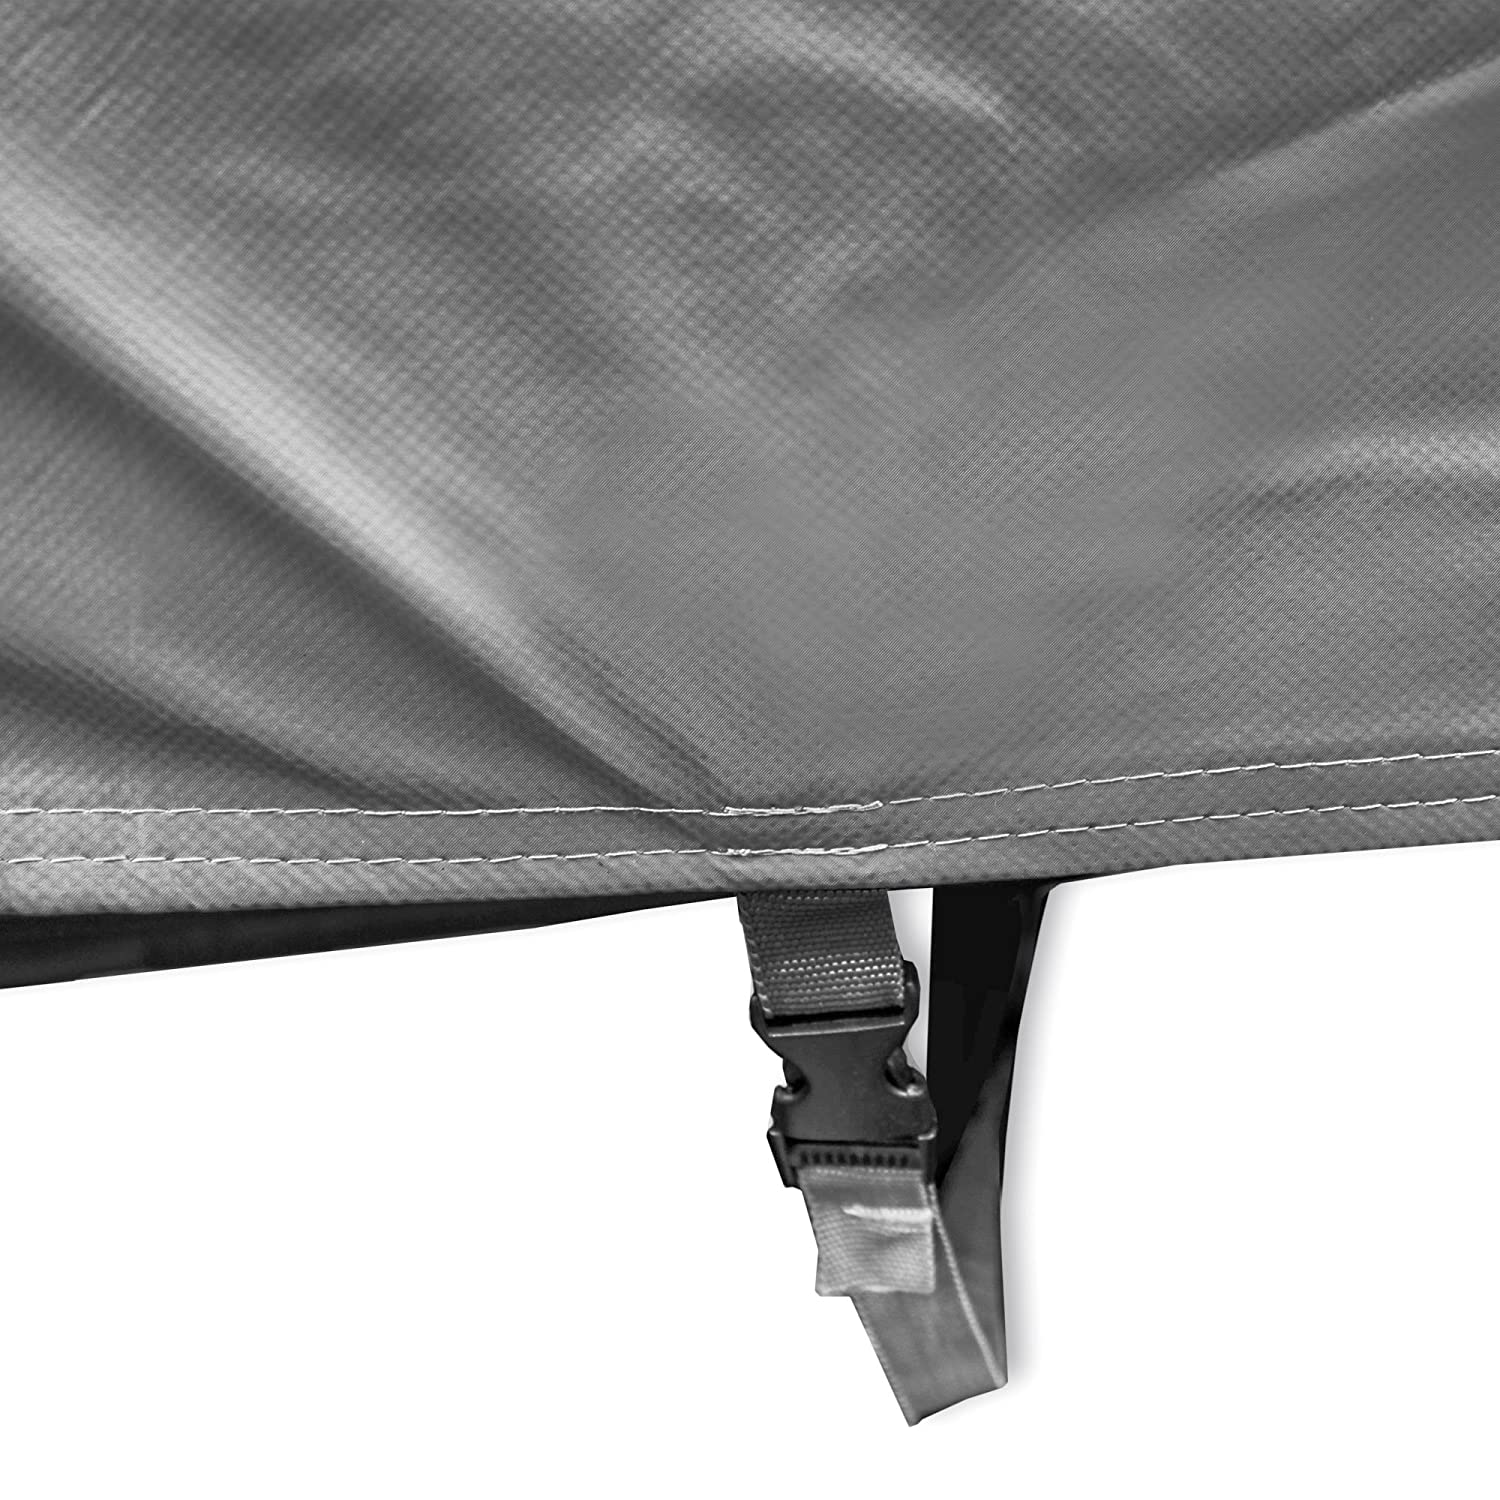 FH Group C502SUV-M SUV Cover Non-Woven Water Resistant Medium